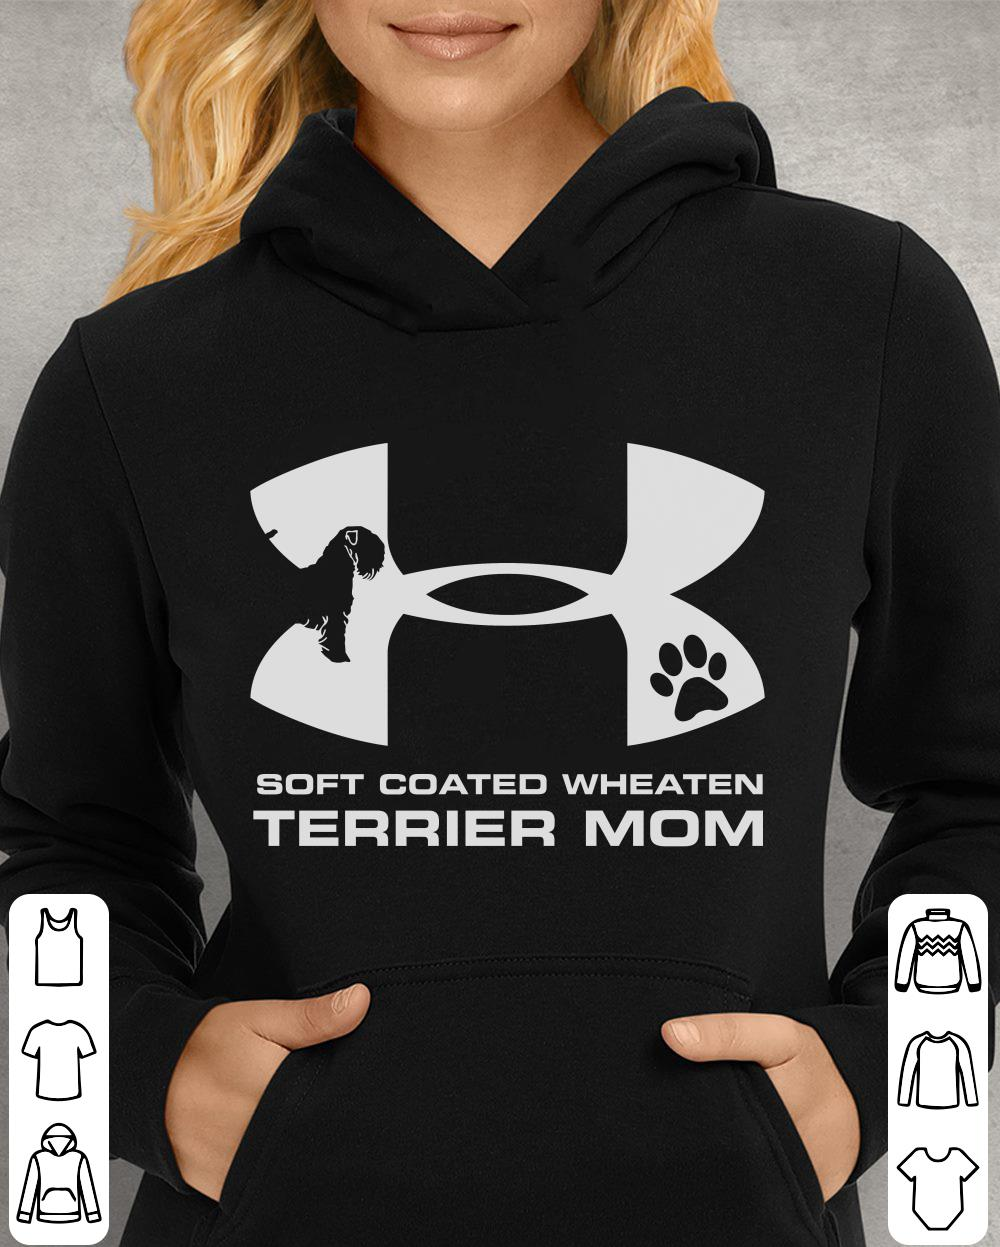 https://unicornshirts.net/images/2018/12/Under-Armour-Soft-Coated-Wheaten-Terrier-Mom-Shirt_4.jpg